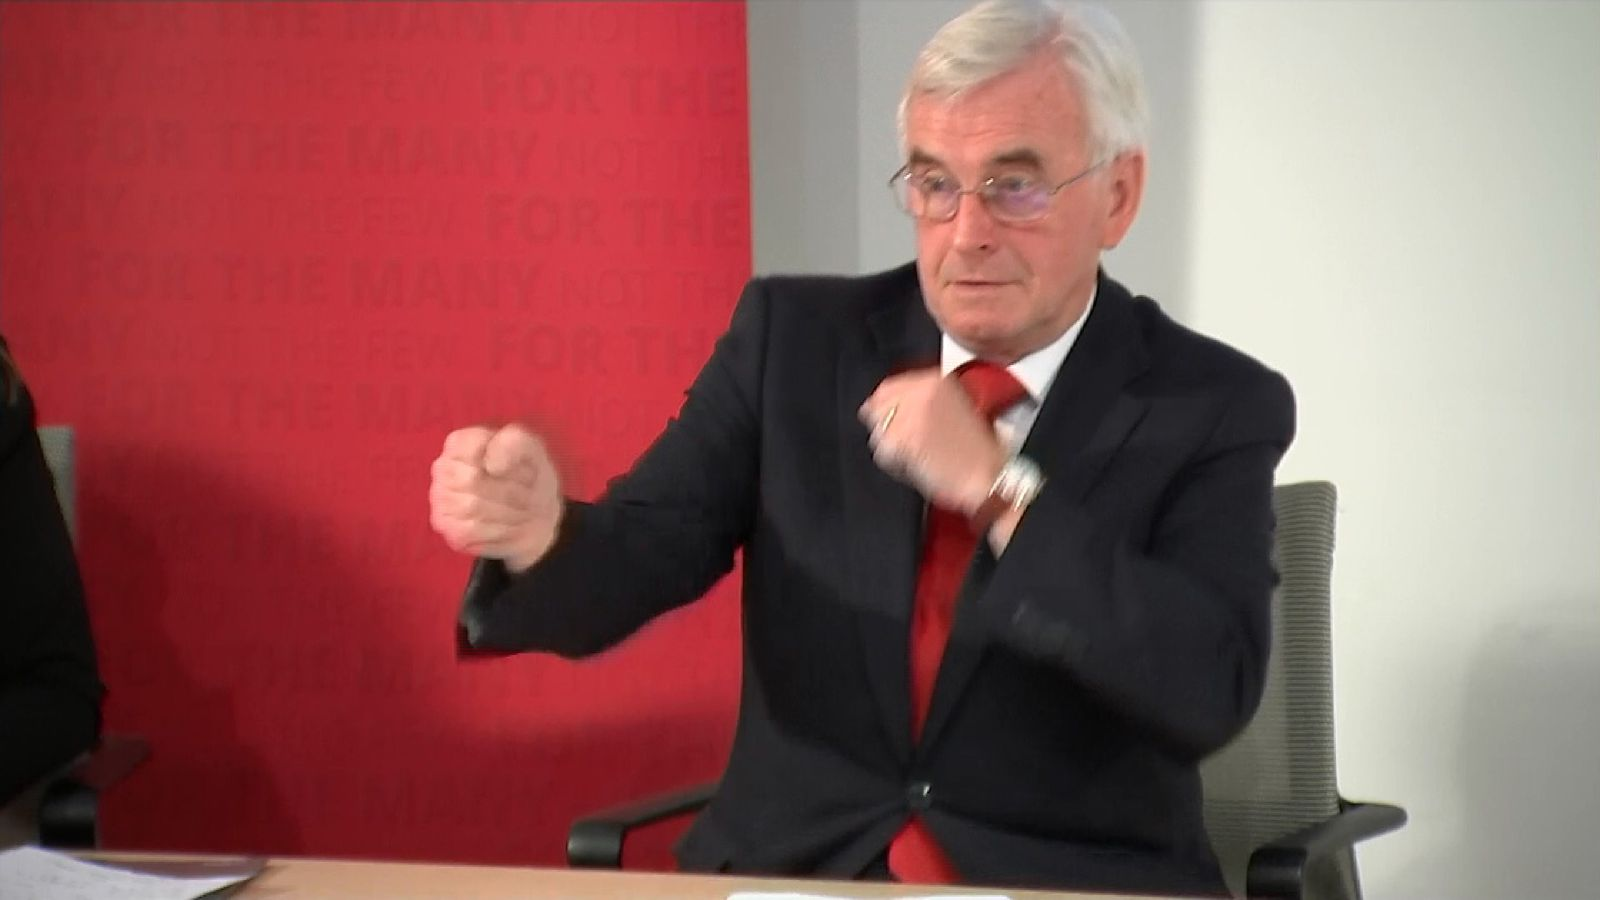 John McDonnell comes out fighting on the General Election campaign